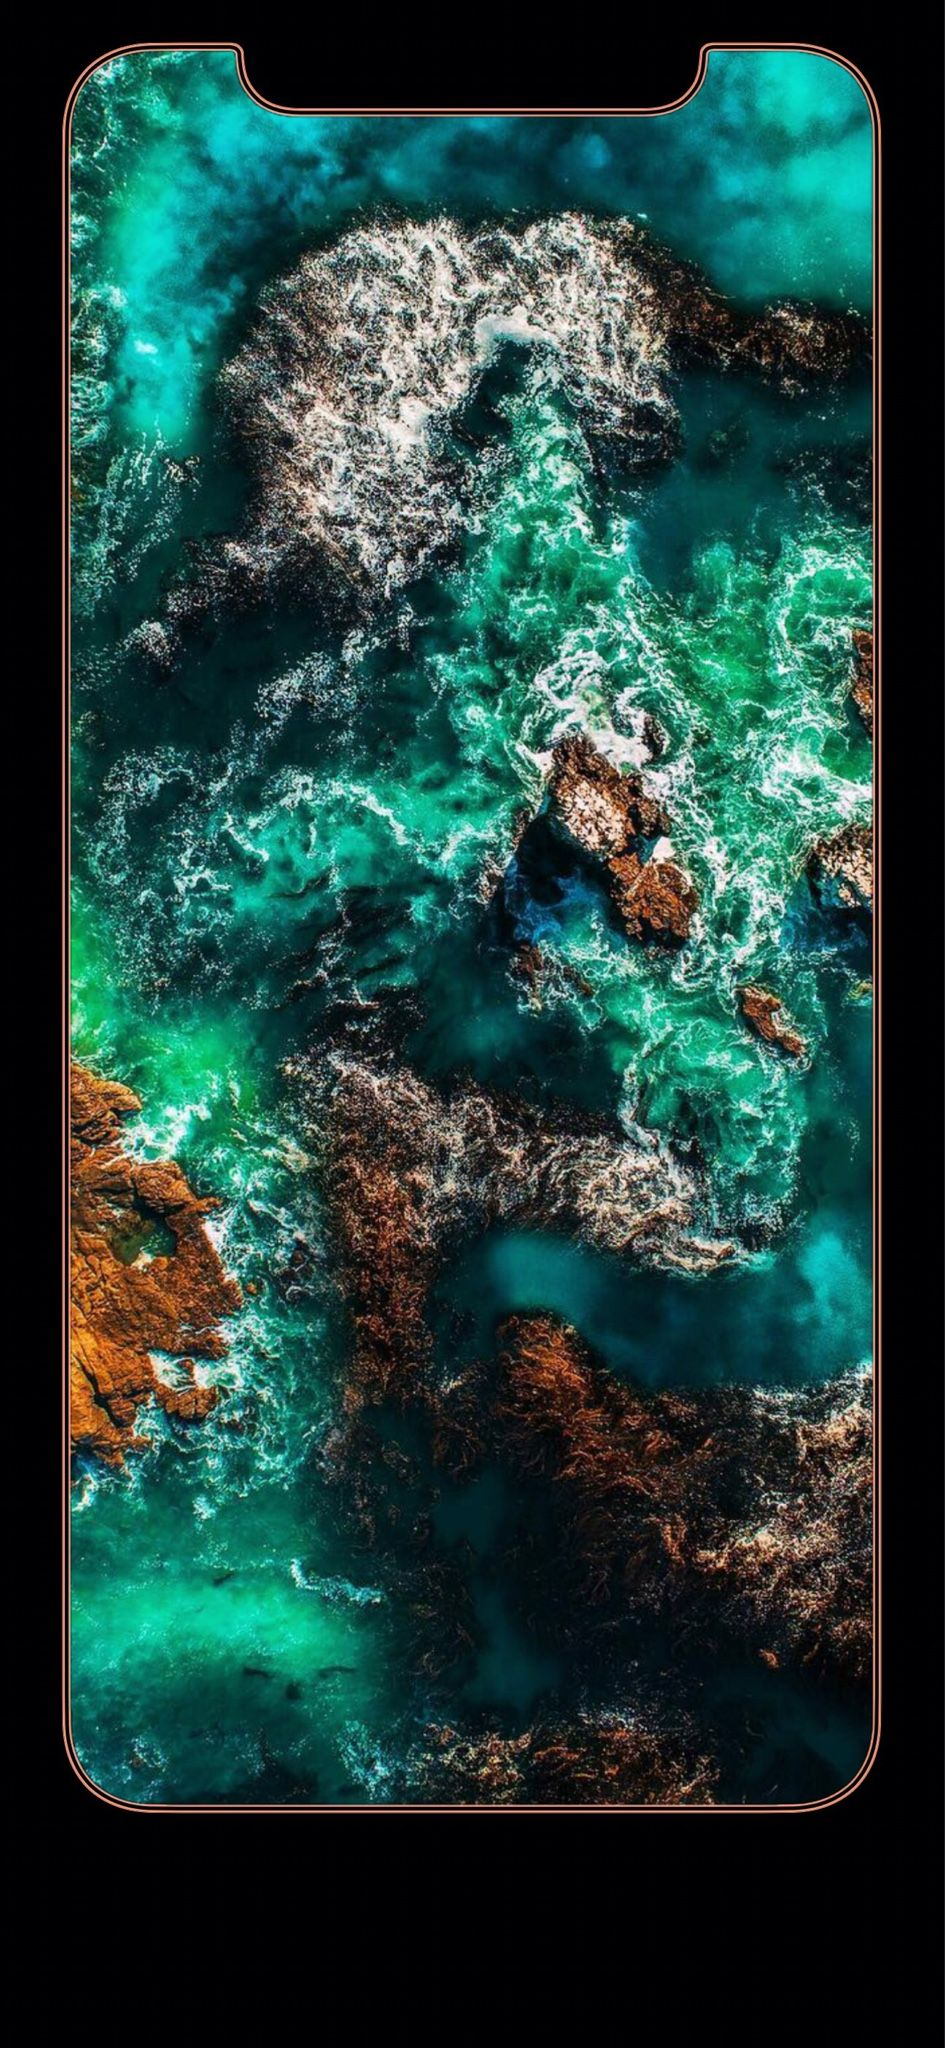 The iPhone X/Xs Wallpaper Thread Page 43 iPhone, iPad